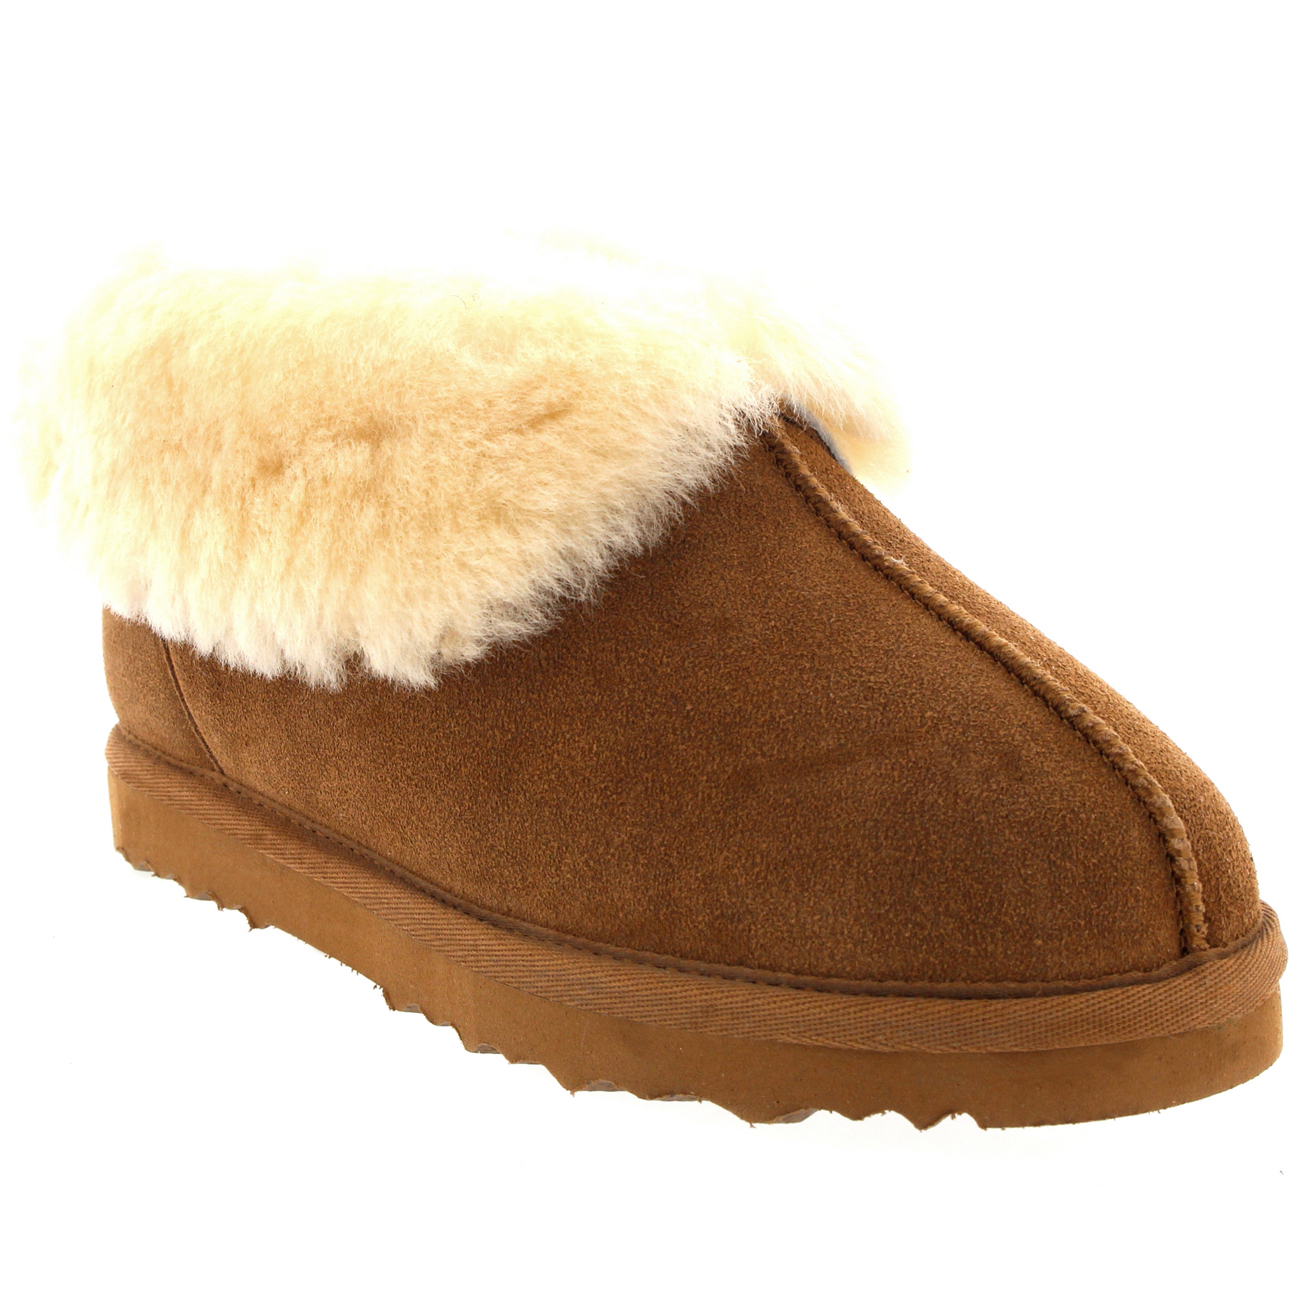 Slippers Australia Womens Real Suede Australian Sheepskin Fur Lined Warm